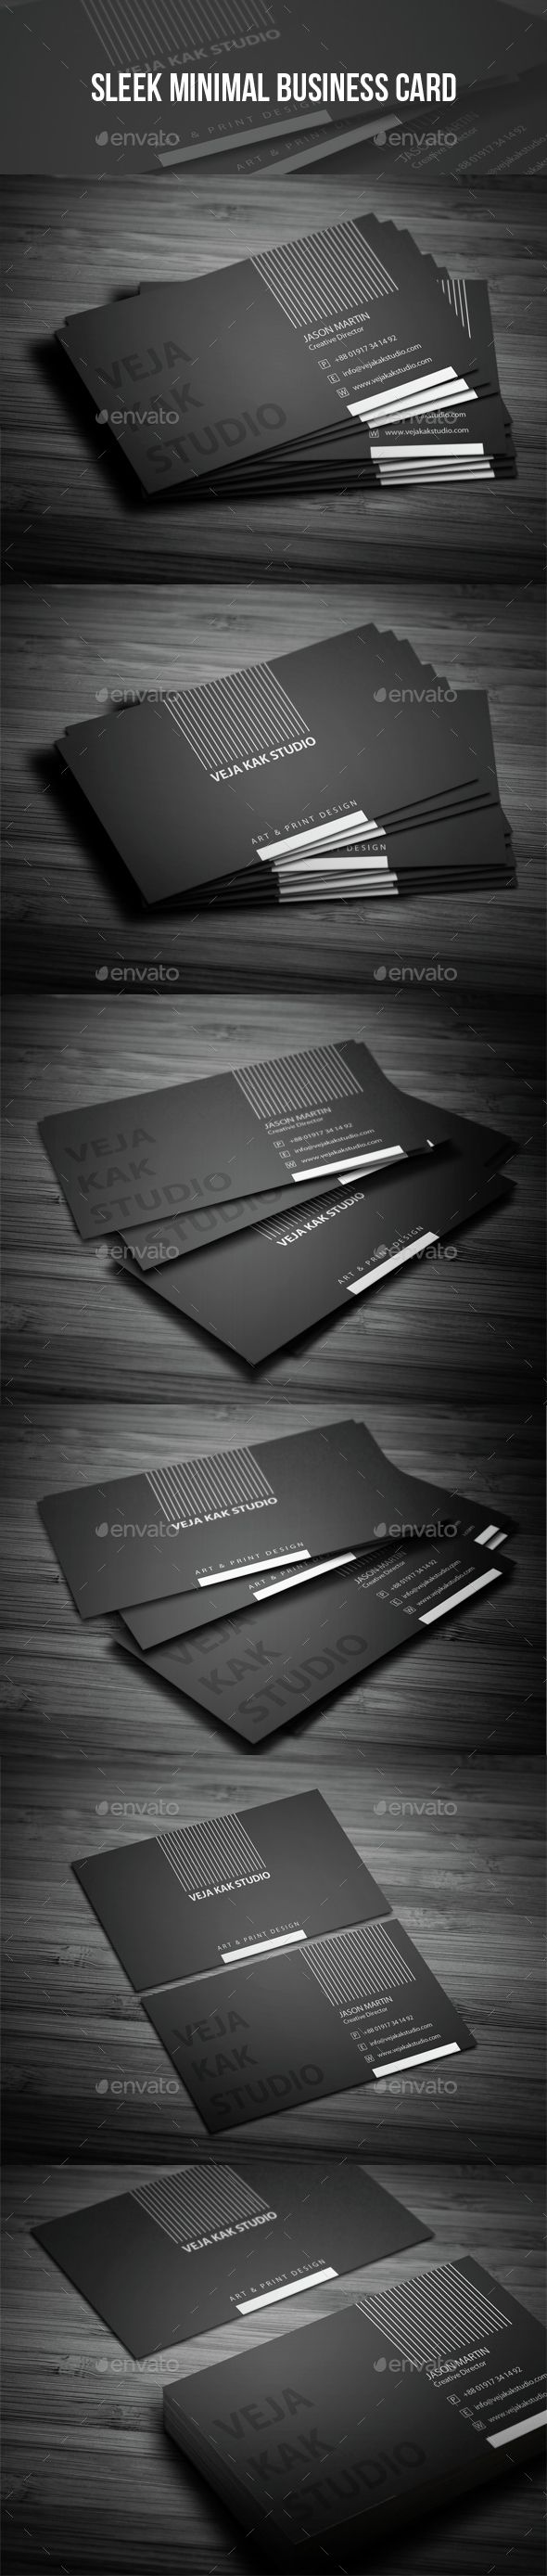 Sleek minimal business card. Sleek minimal business card template. Best suitable for personal and commercial use. Features:  Cre